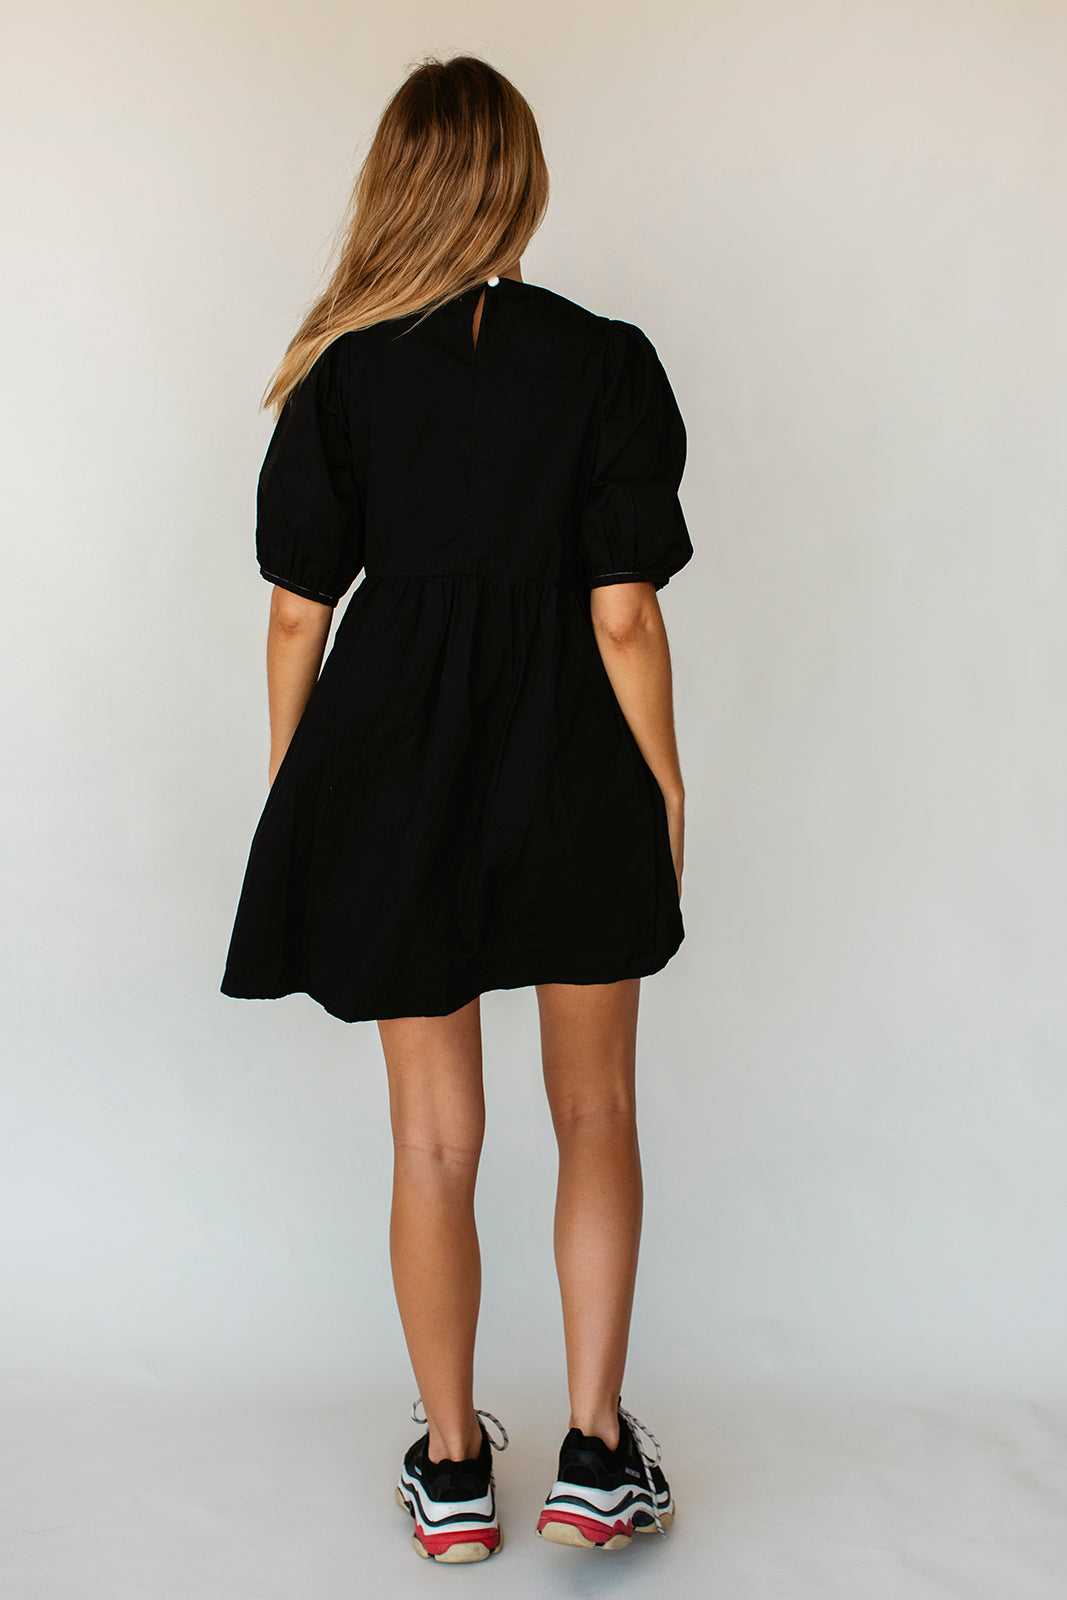 DARLA MINI DRESS - BLACK POPLIN (pre-order)